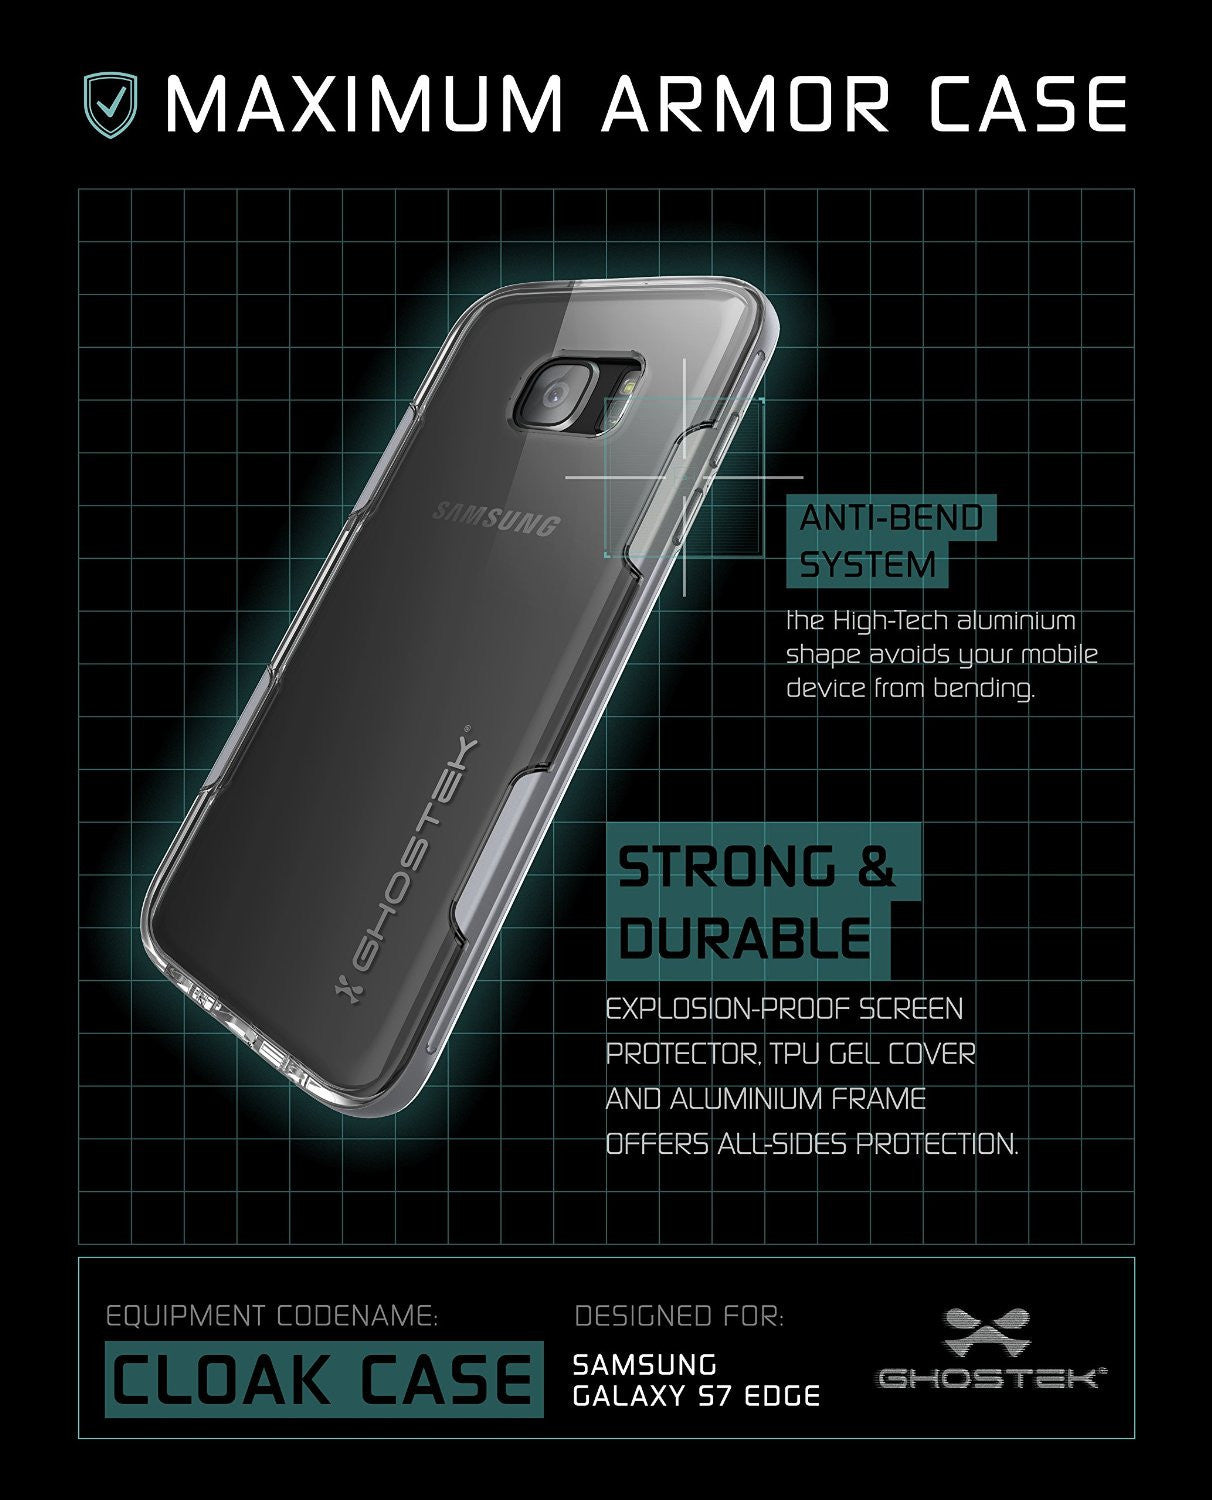 GHOSTEK - Cloak 2.0 Series Armor Case for Samsung S7 Edge | Silver